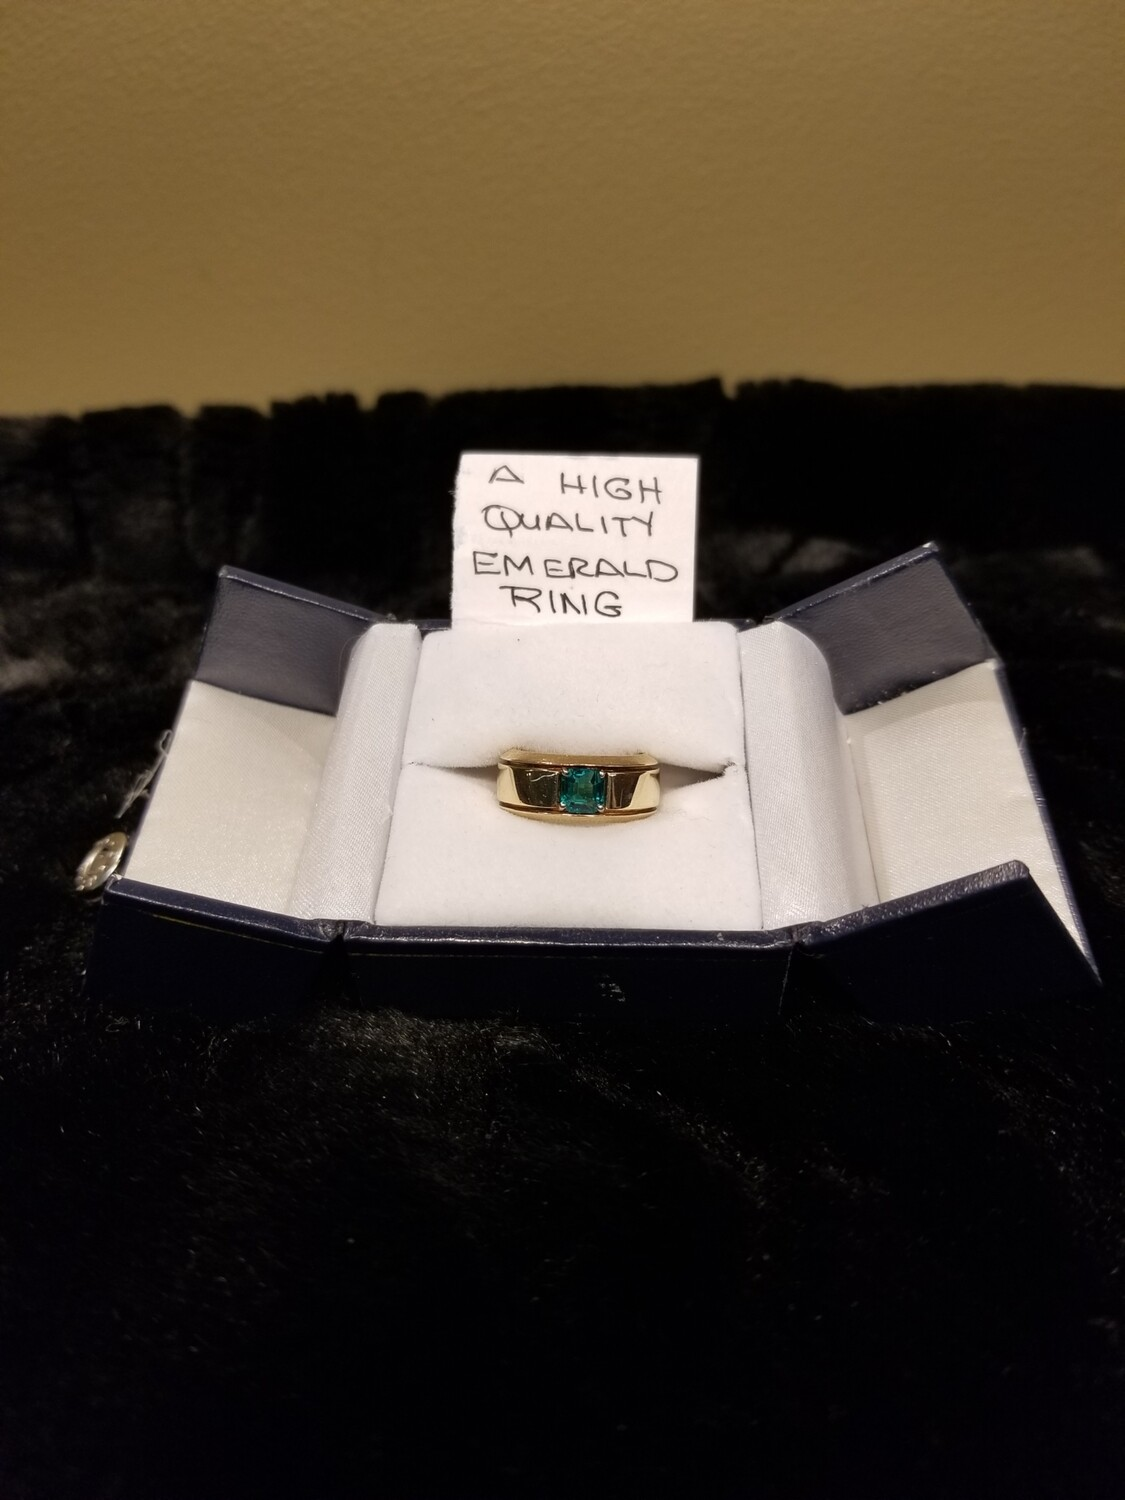 High Quality Emerald Ring